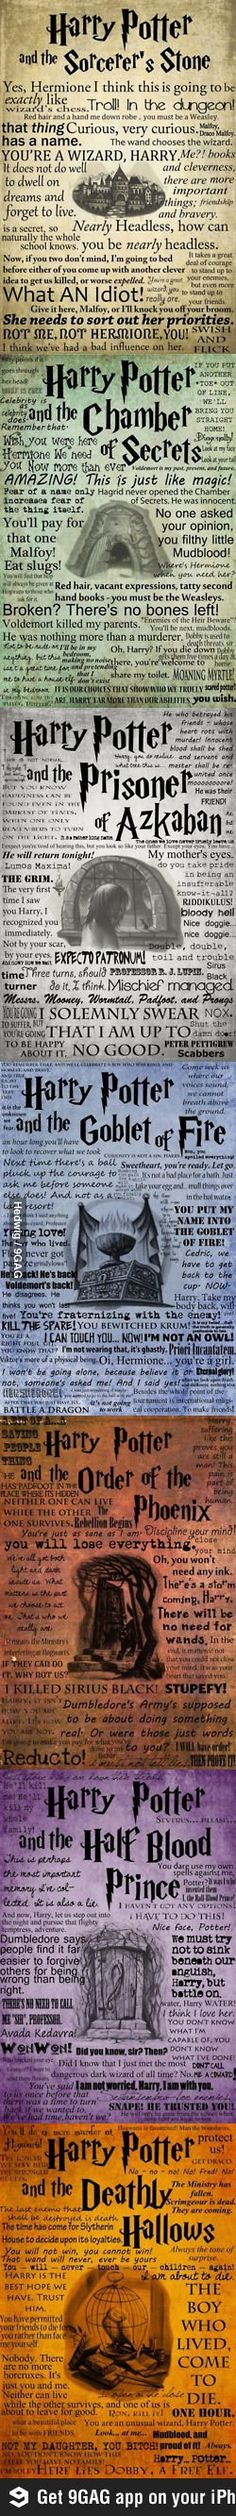 Unforgettable moments from Harry Potter <3